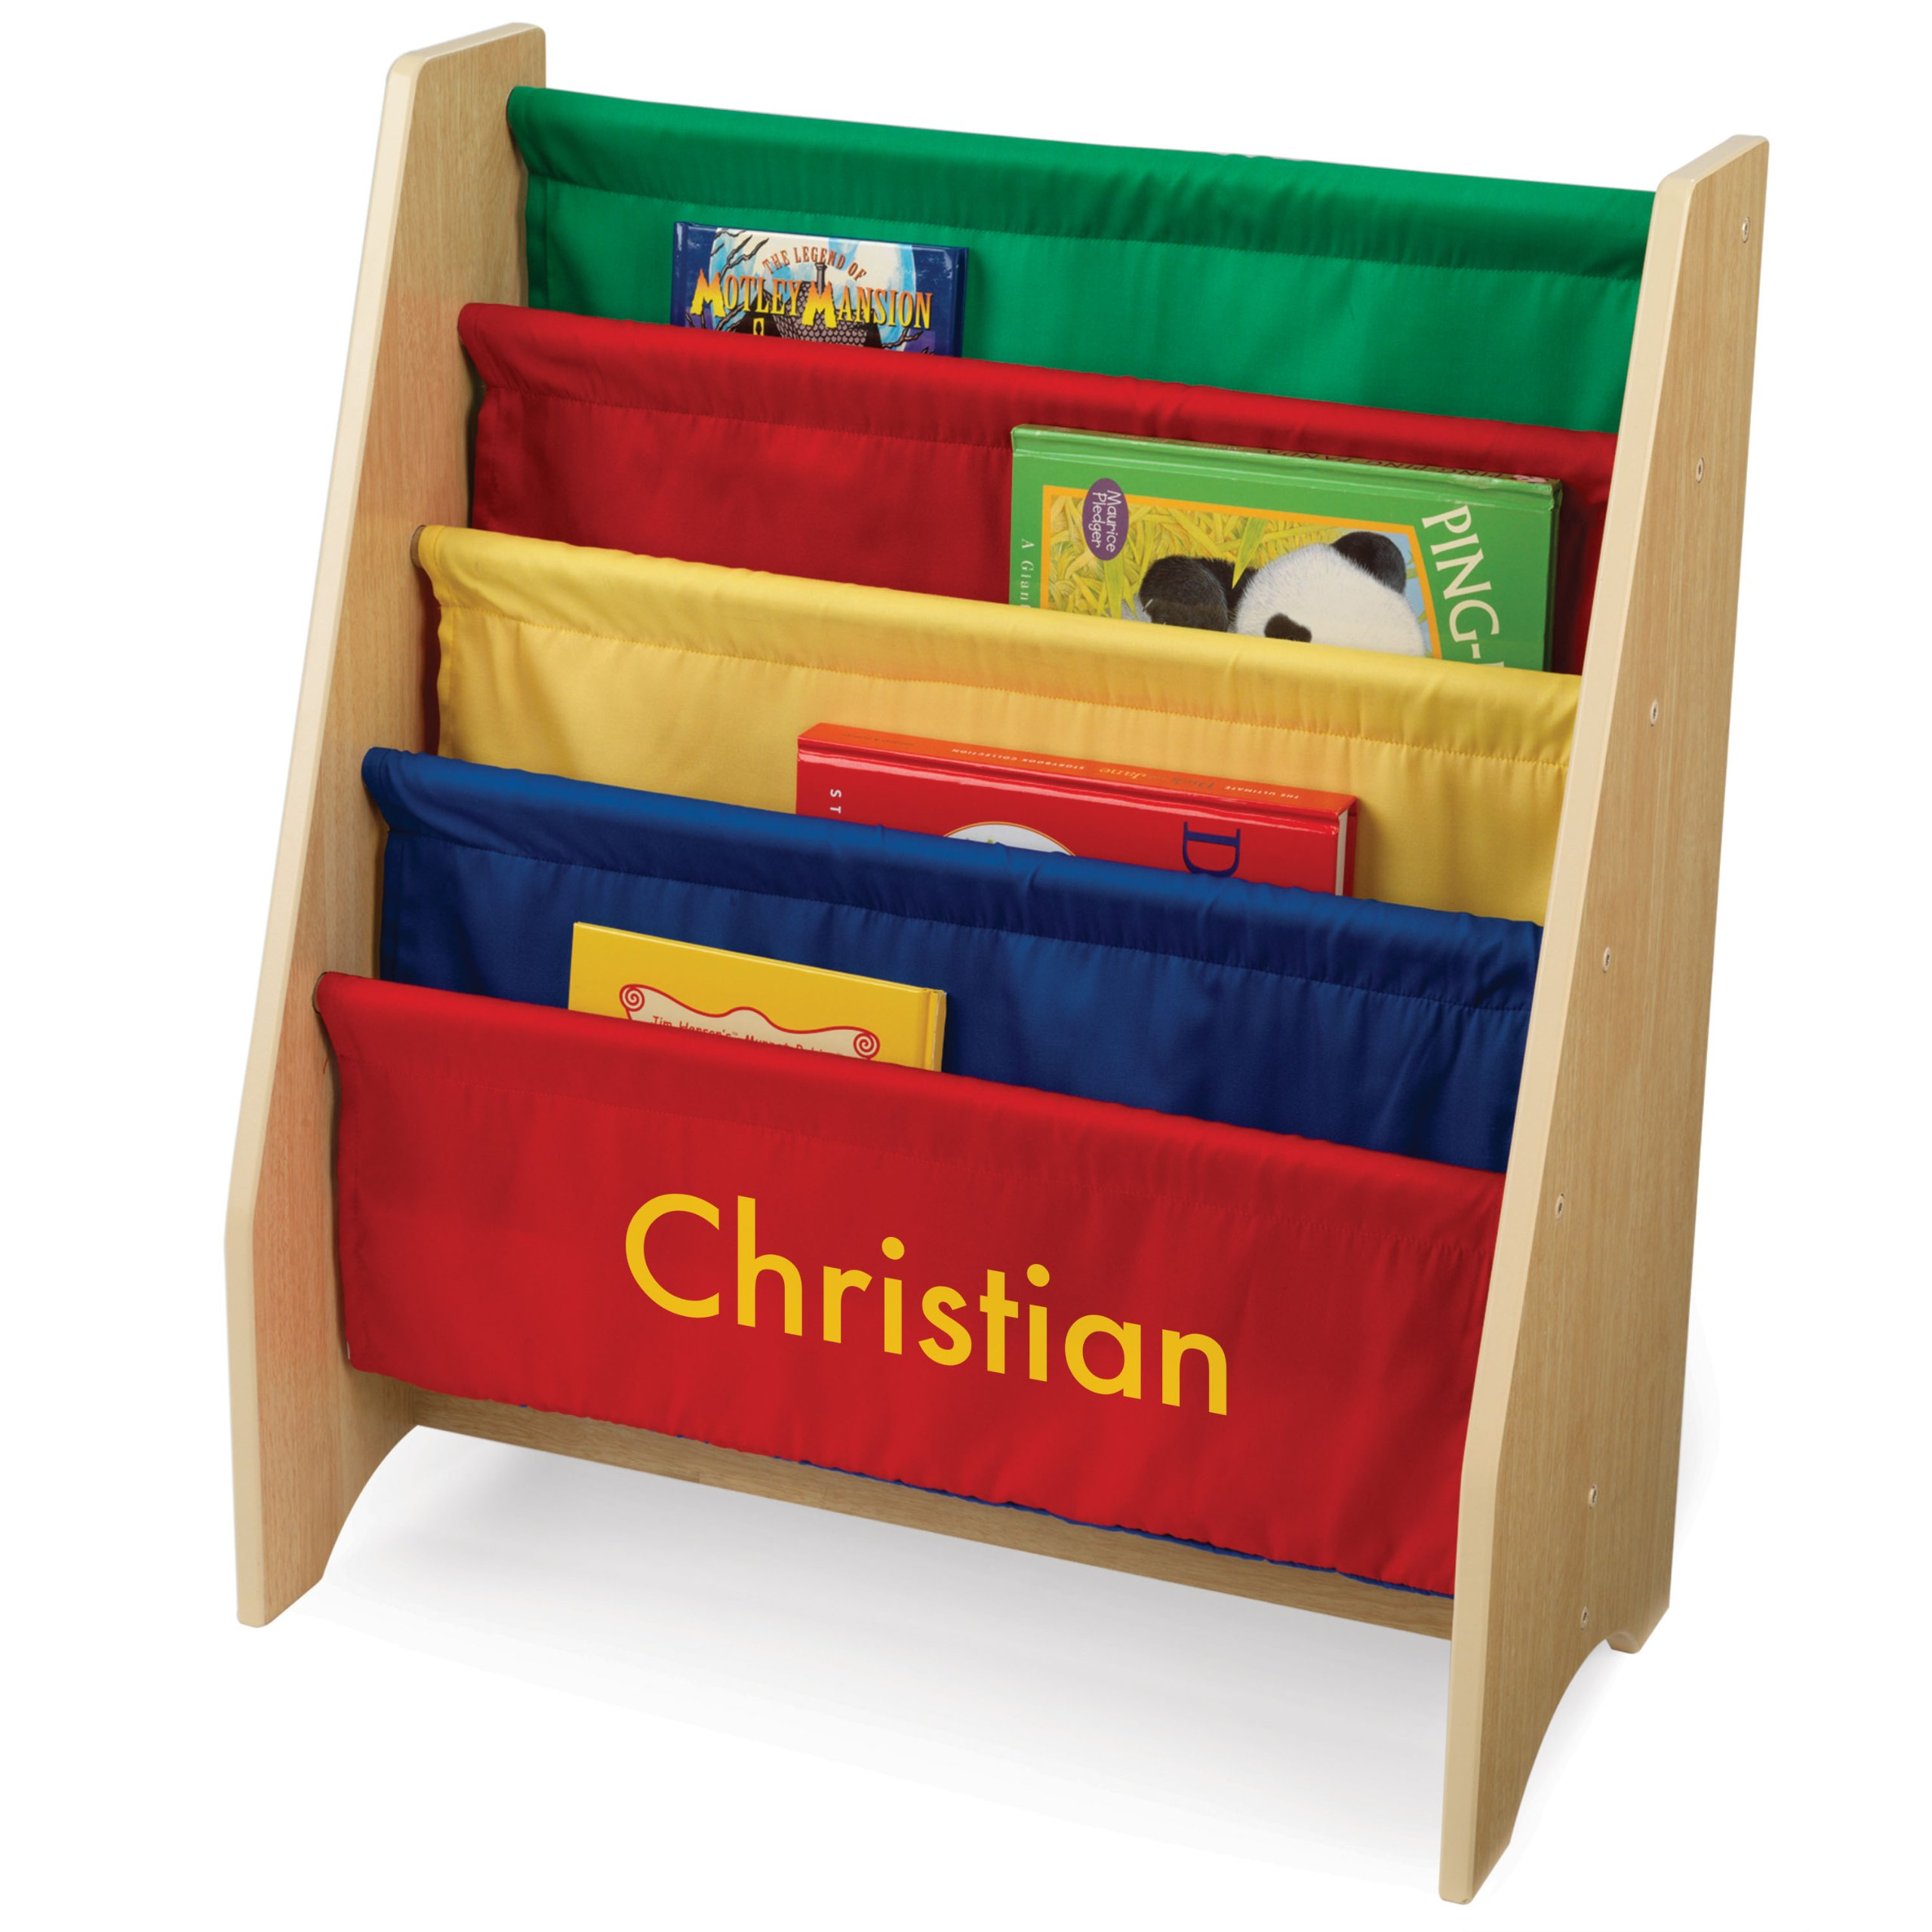 KidKraft Personalized Primary Sling Bookshelf with Yellow Block - Christian by KidKraft